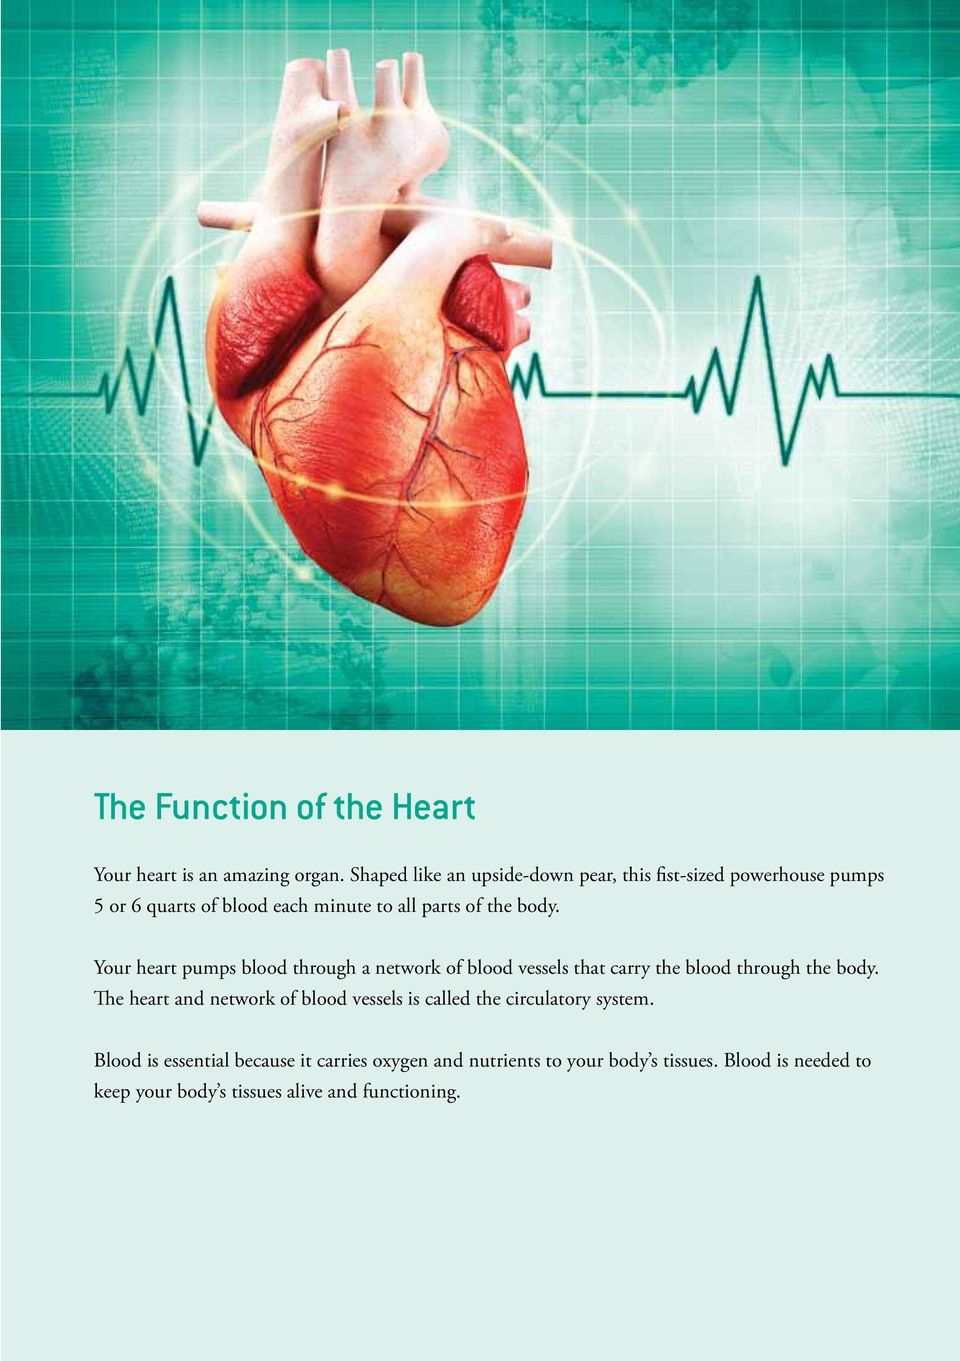 Your heart pumps blood through a network of blood vessels that carry the blood through the body.